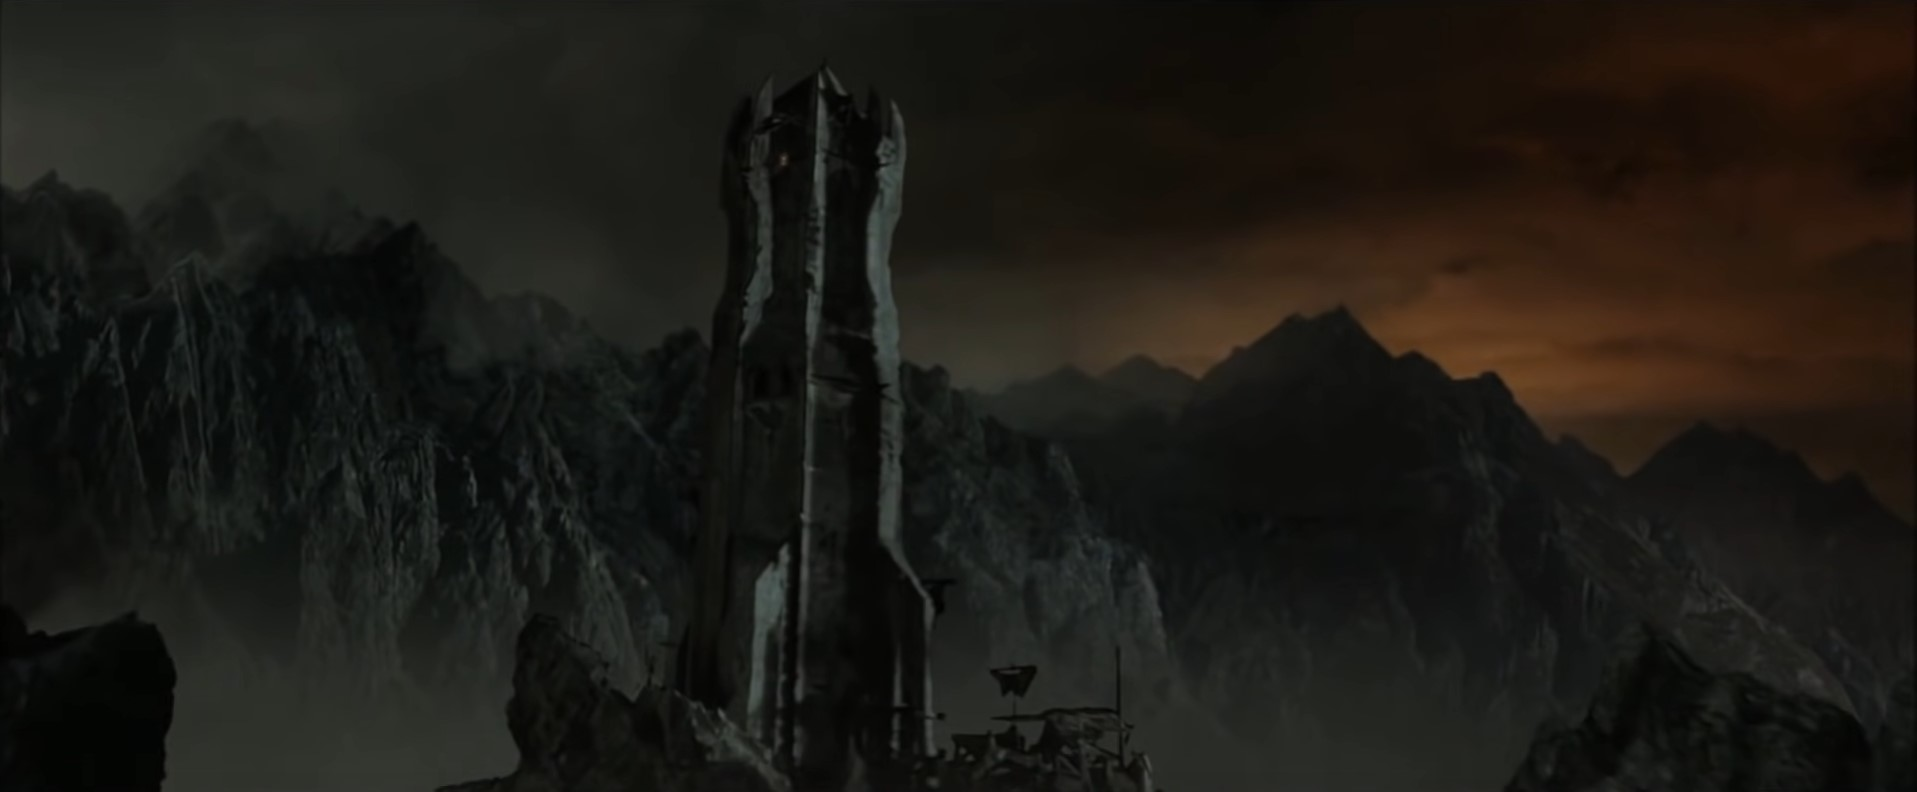 File:Tower of Cirth ungol.jpeg